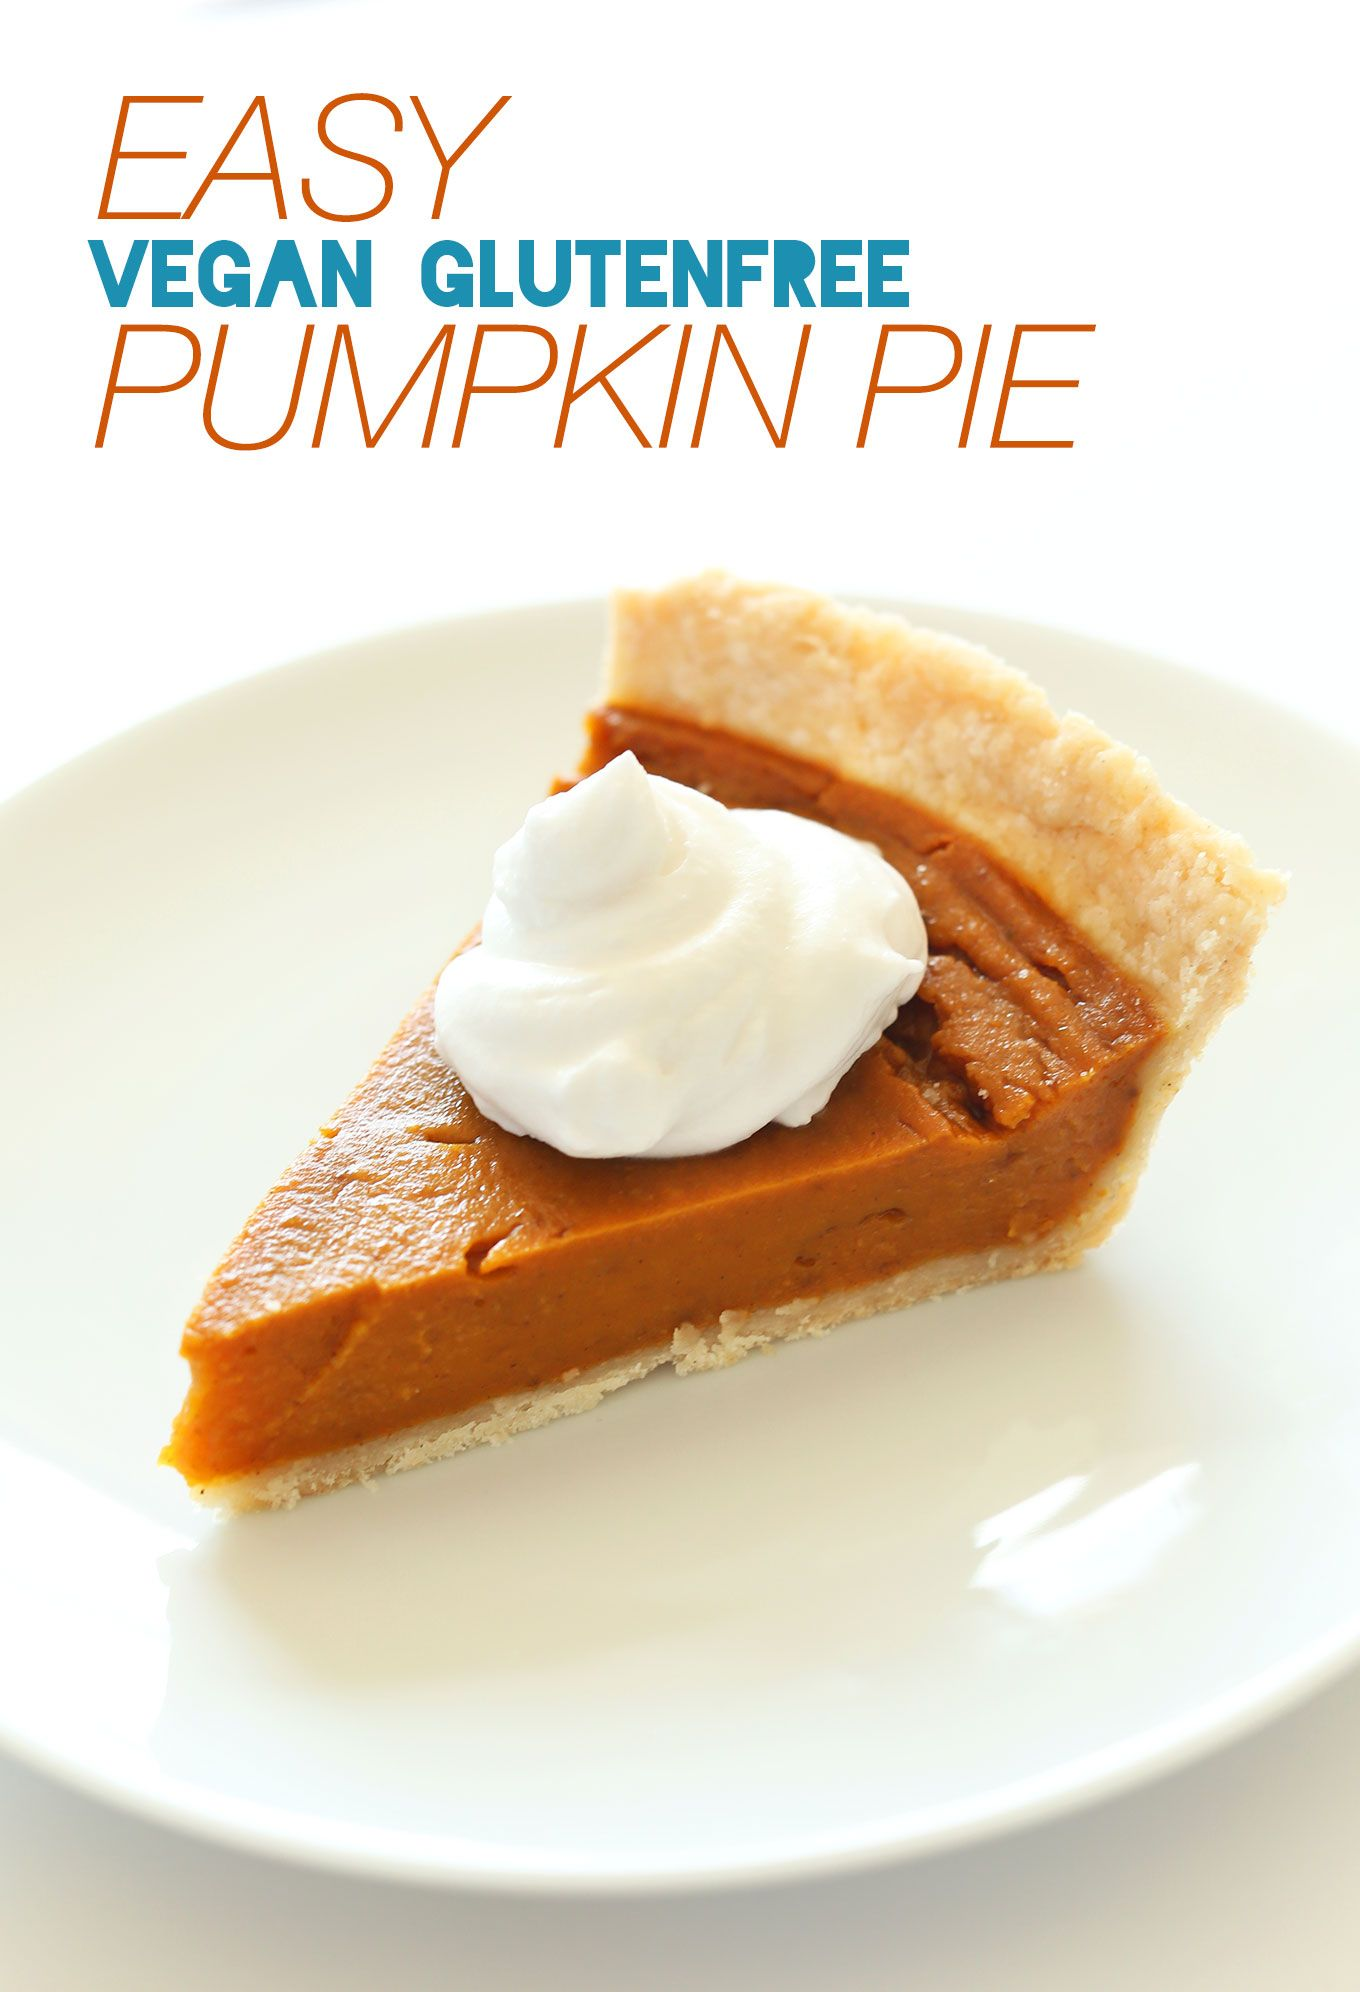 pumpkin pie on pinterest recipes using coconut milk dairy free and